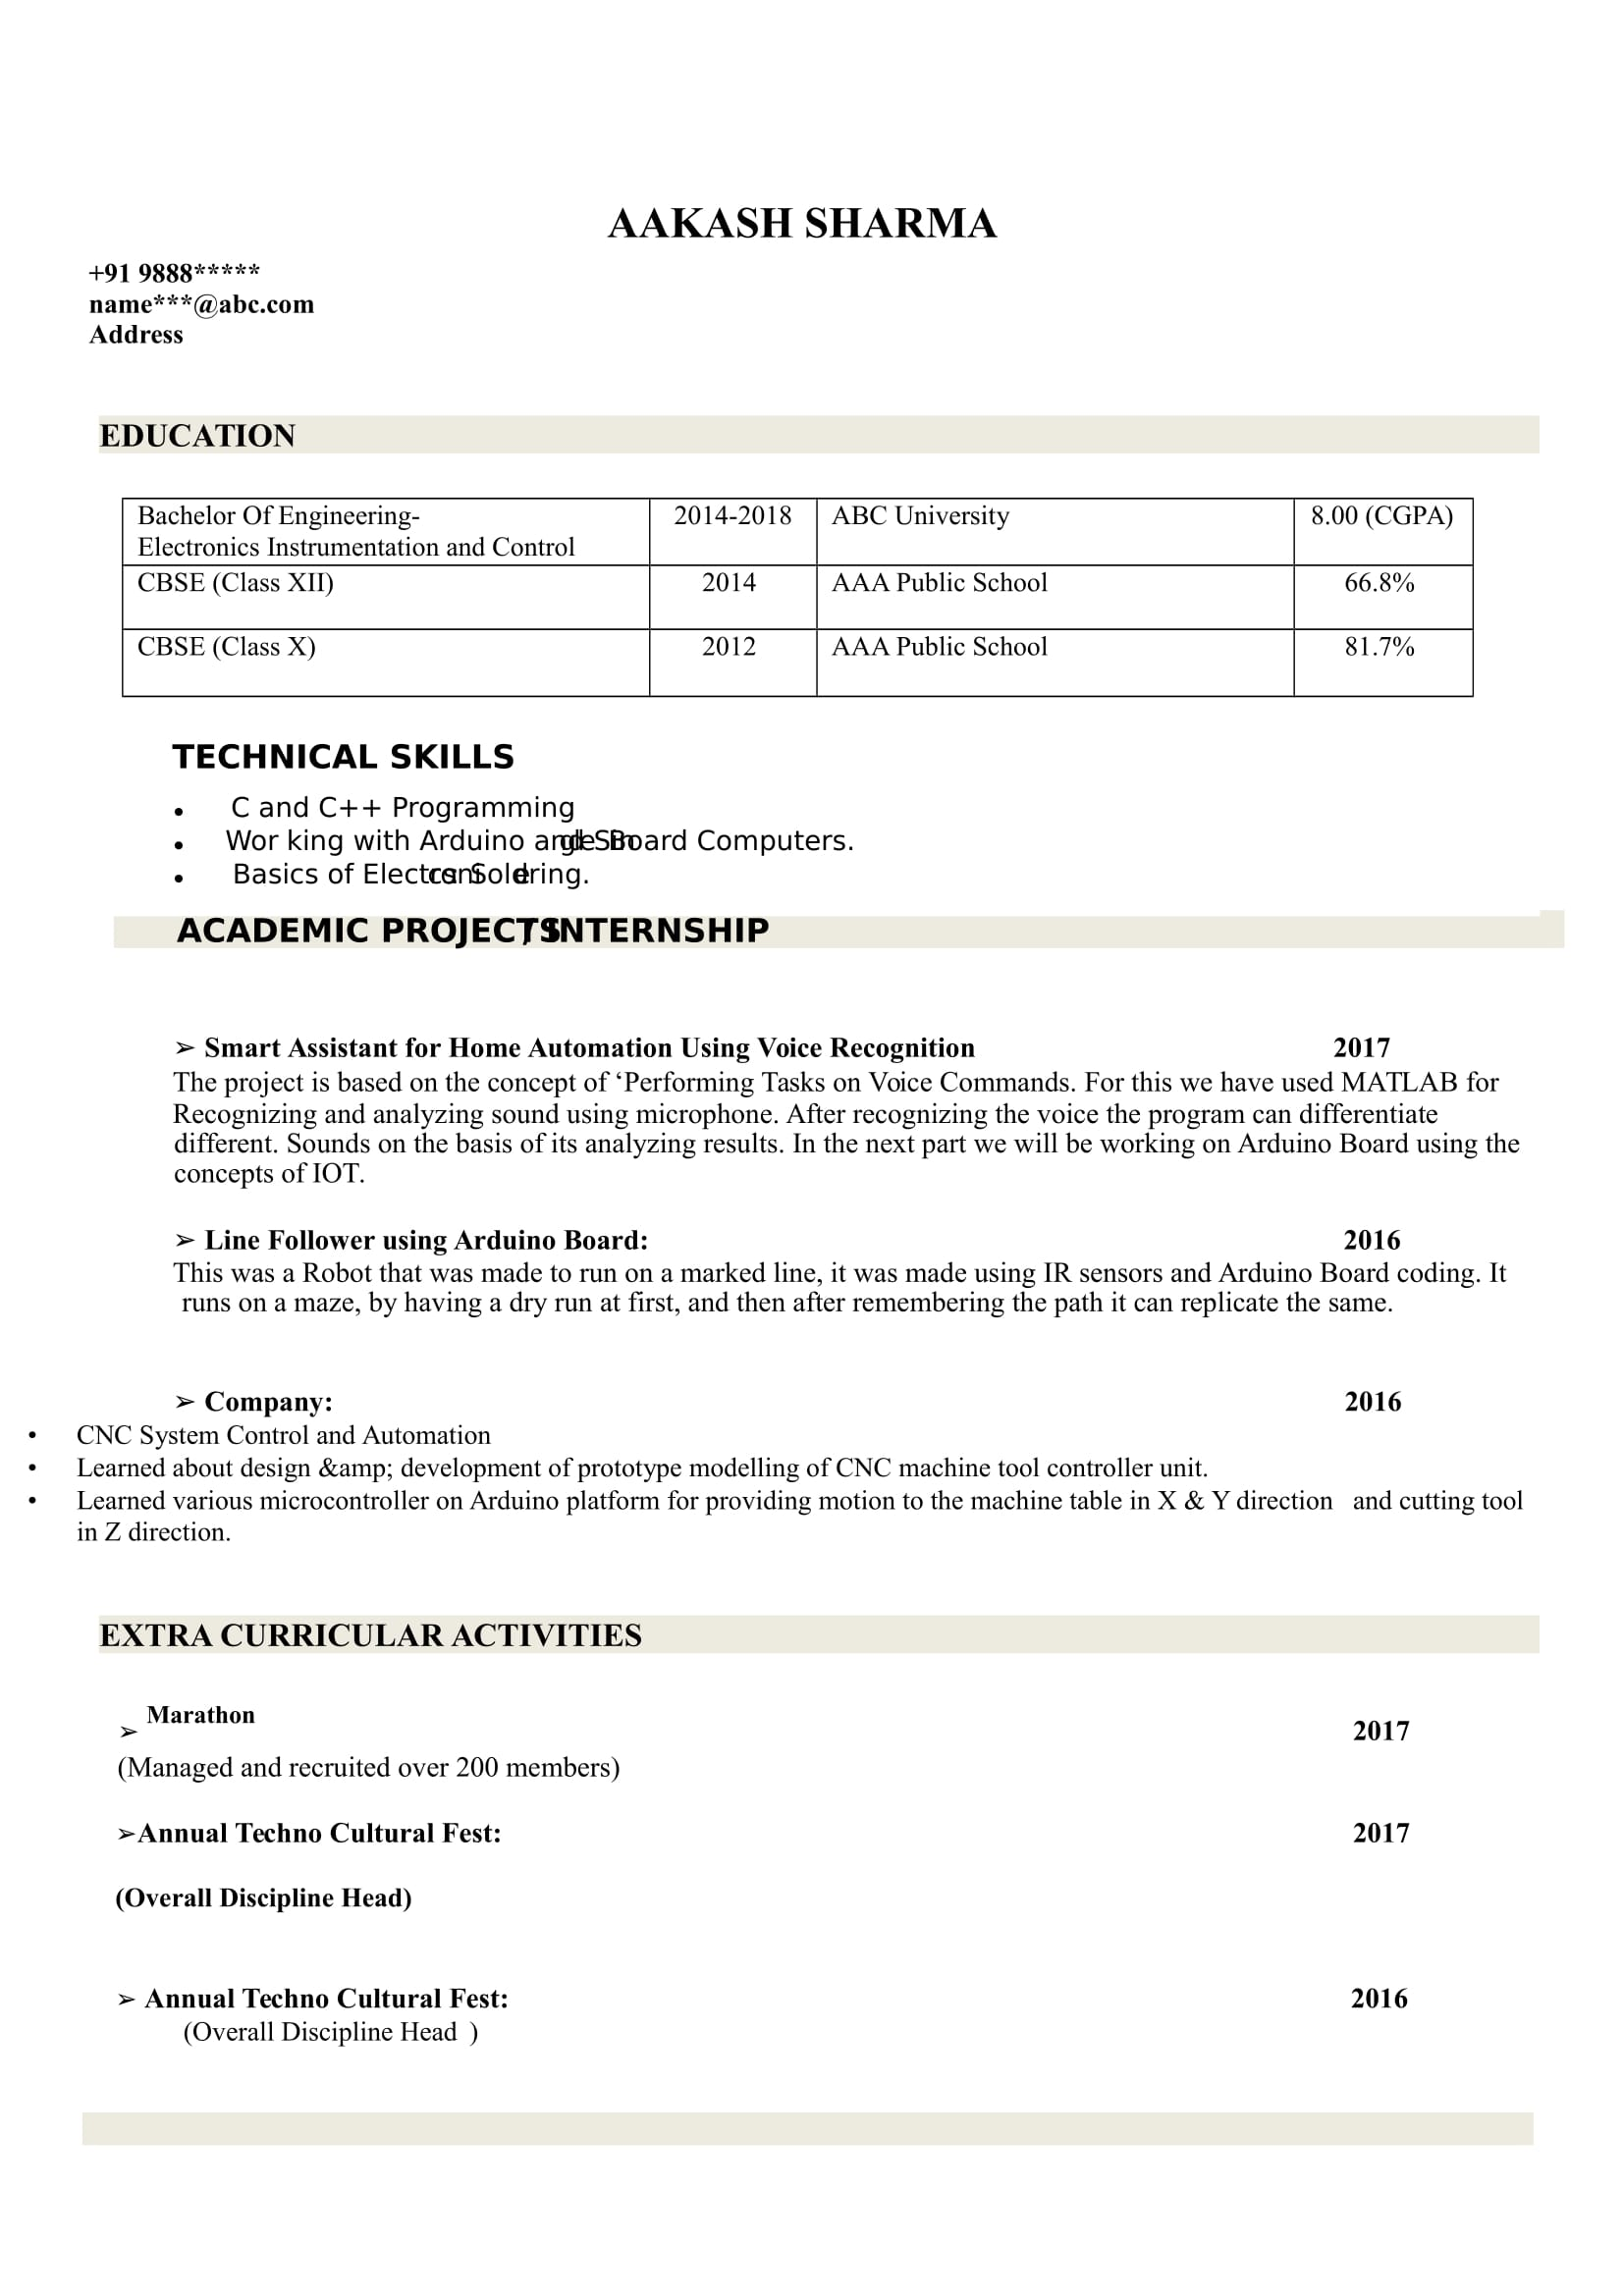 resume templates for electronics and instrumentation